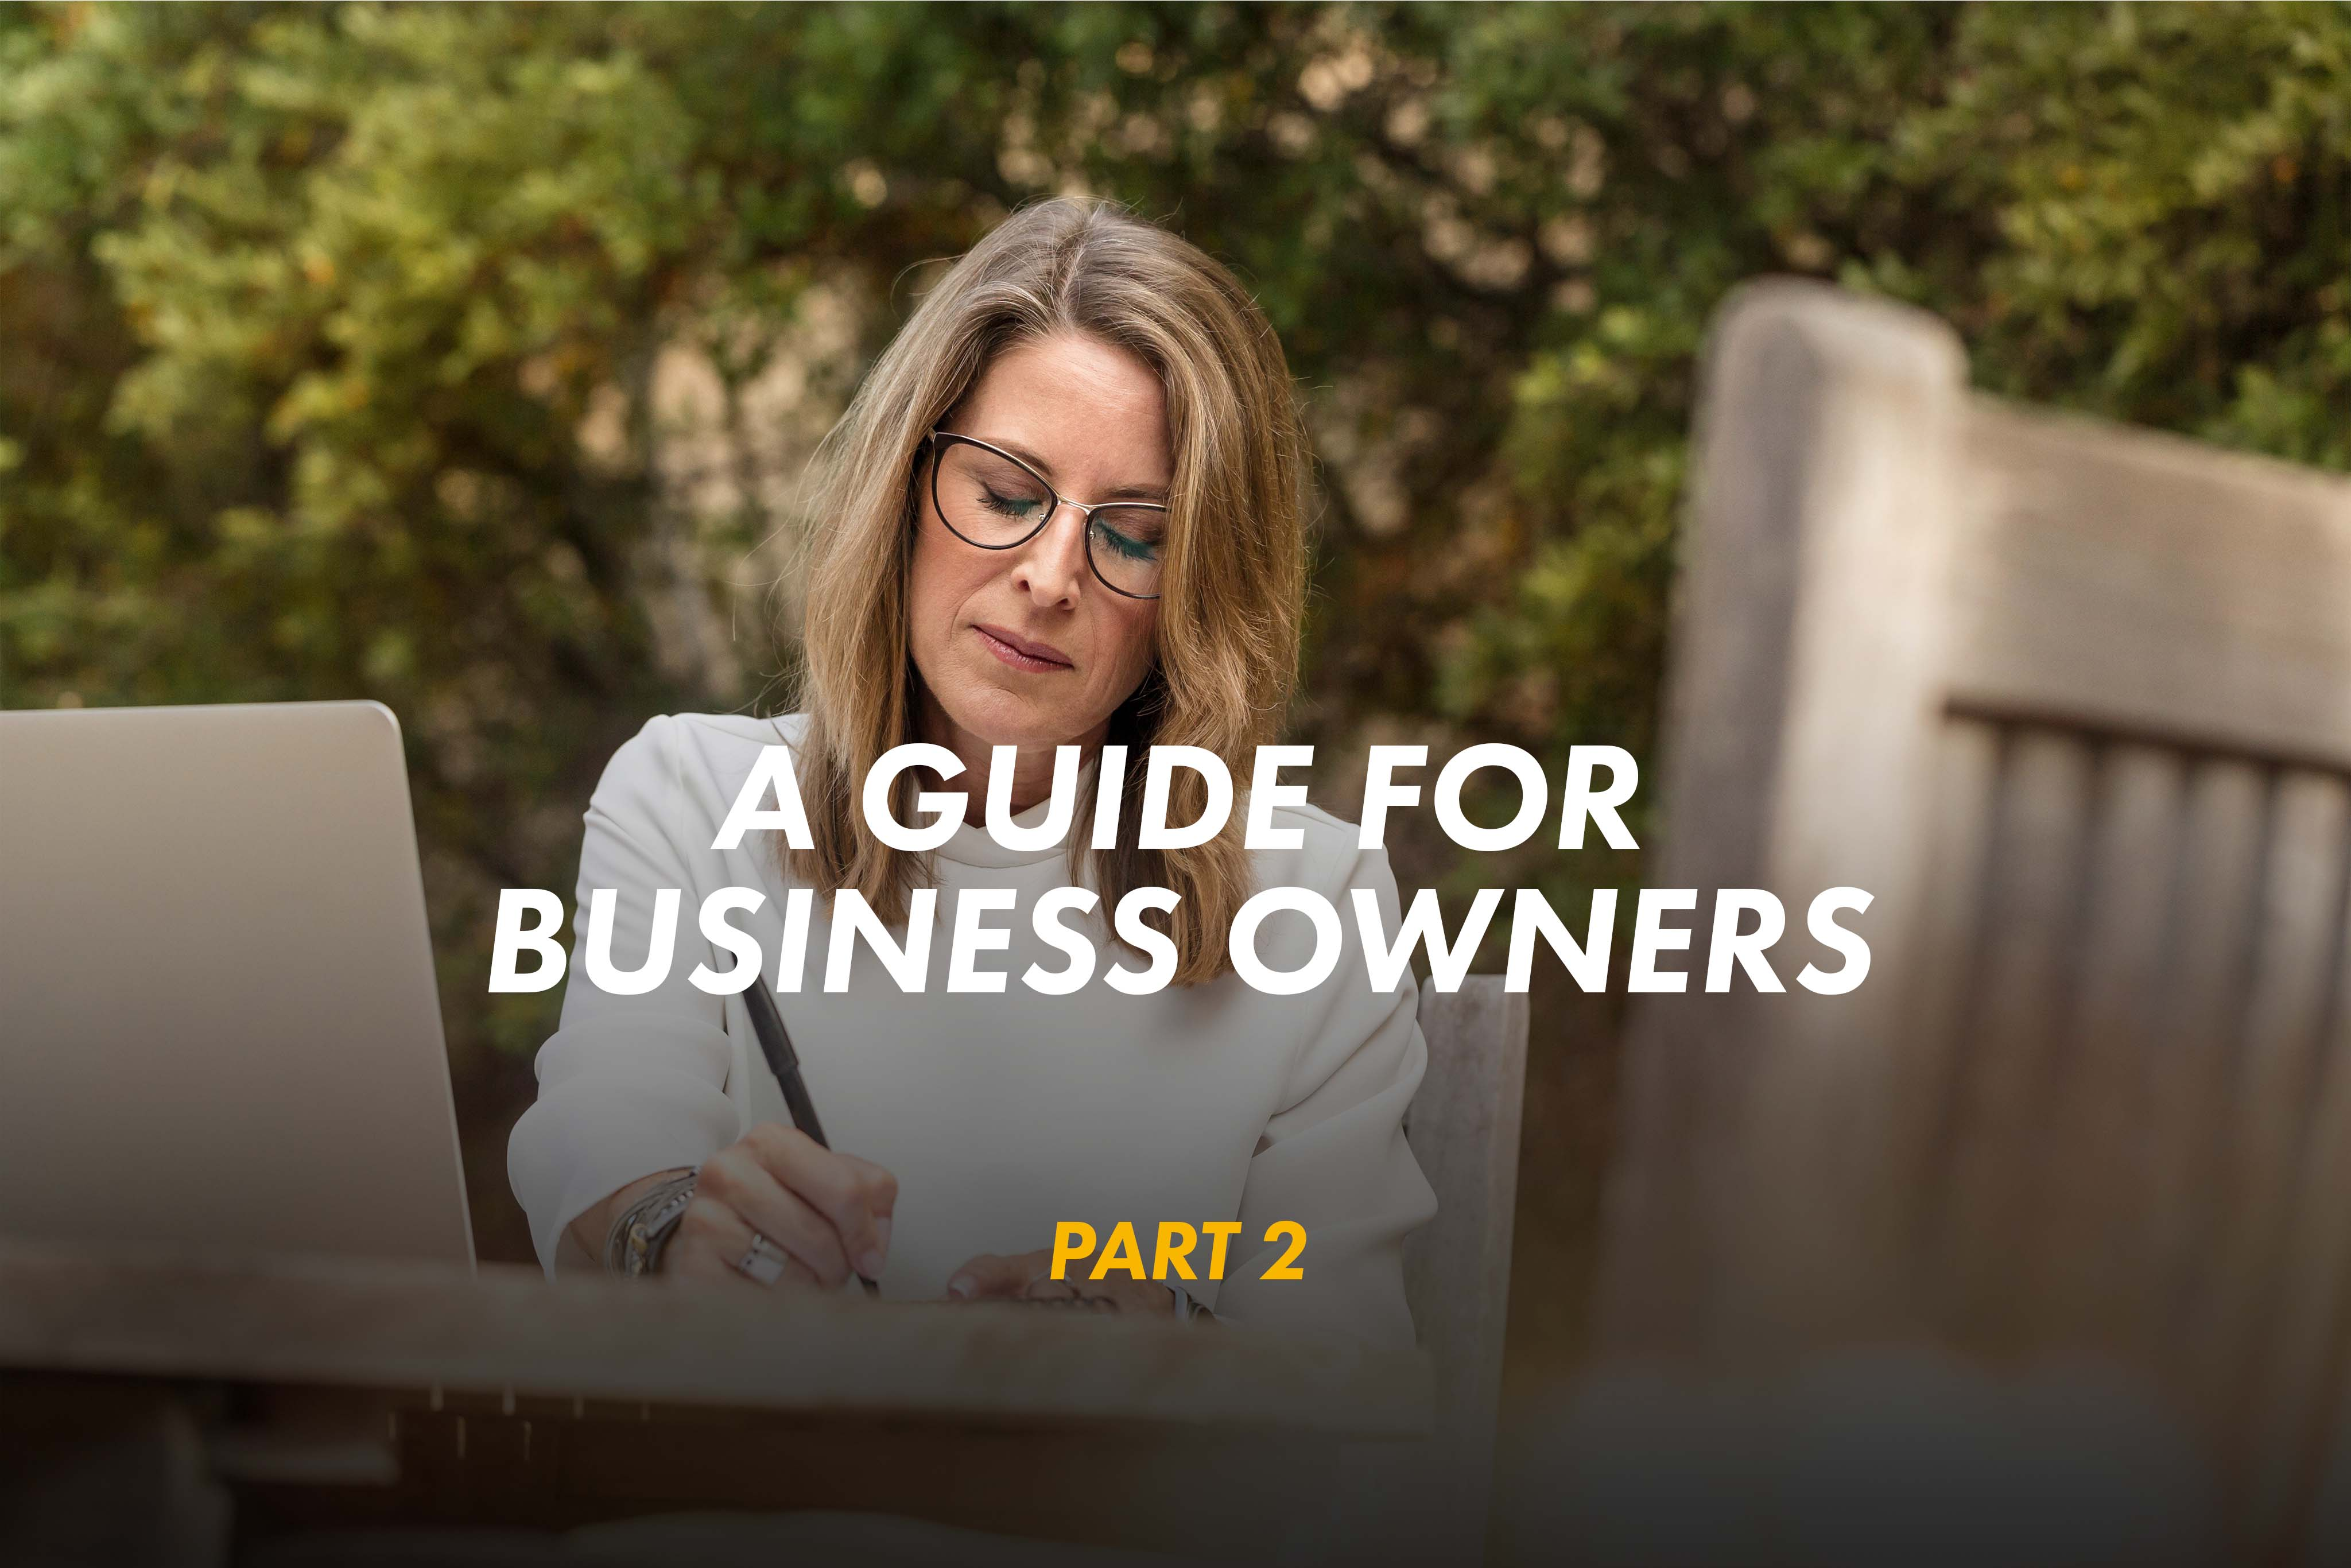 The First Wealth Guide for Business Owners – Part 2